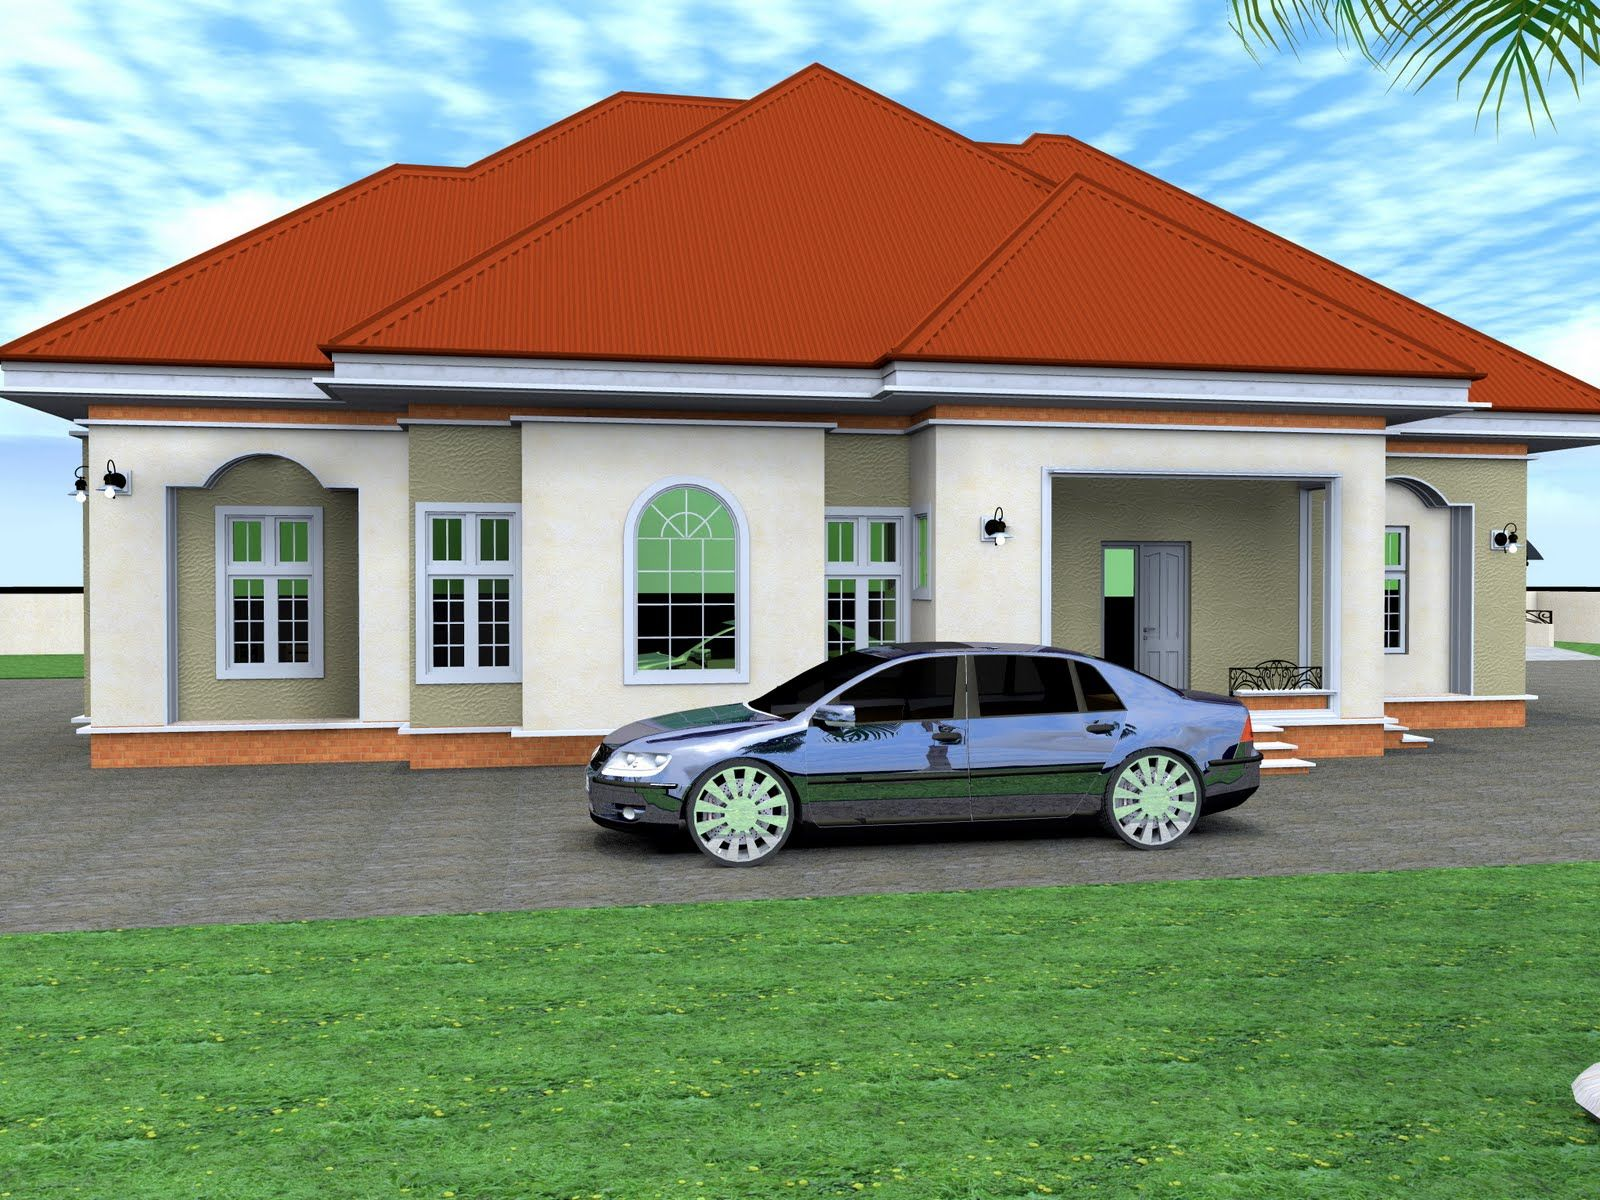 5 bedroom duplex building plan in nigeria rchitectural designs